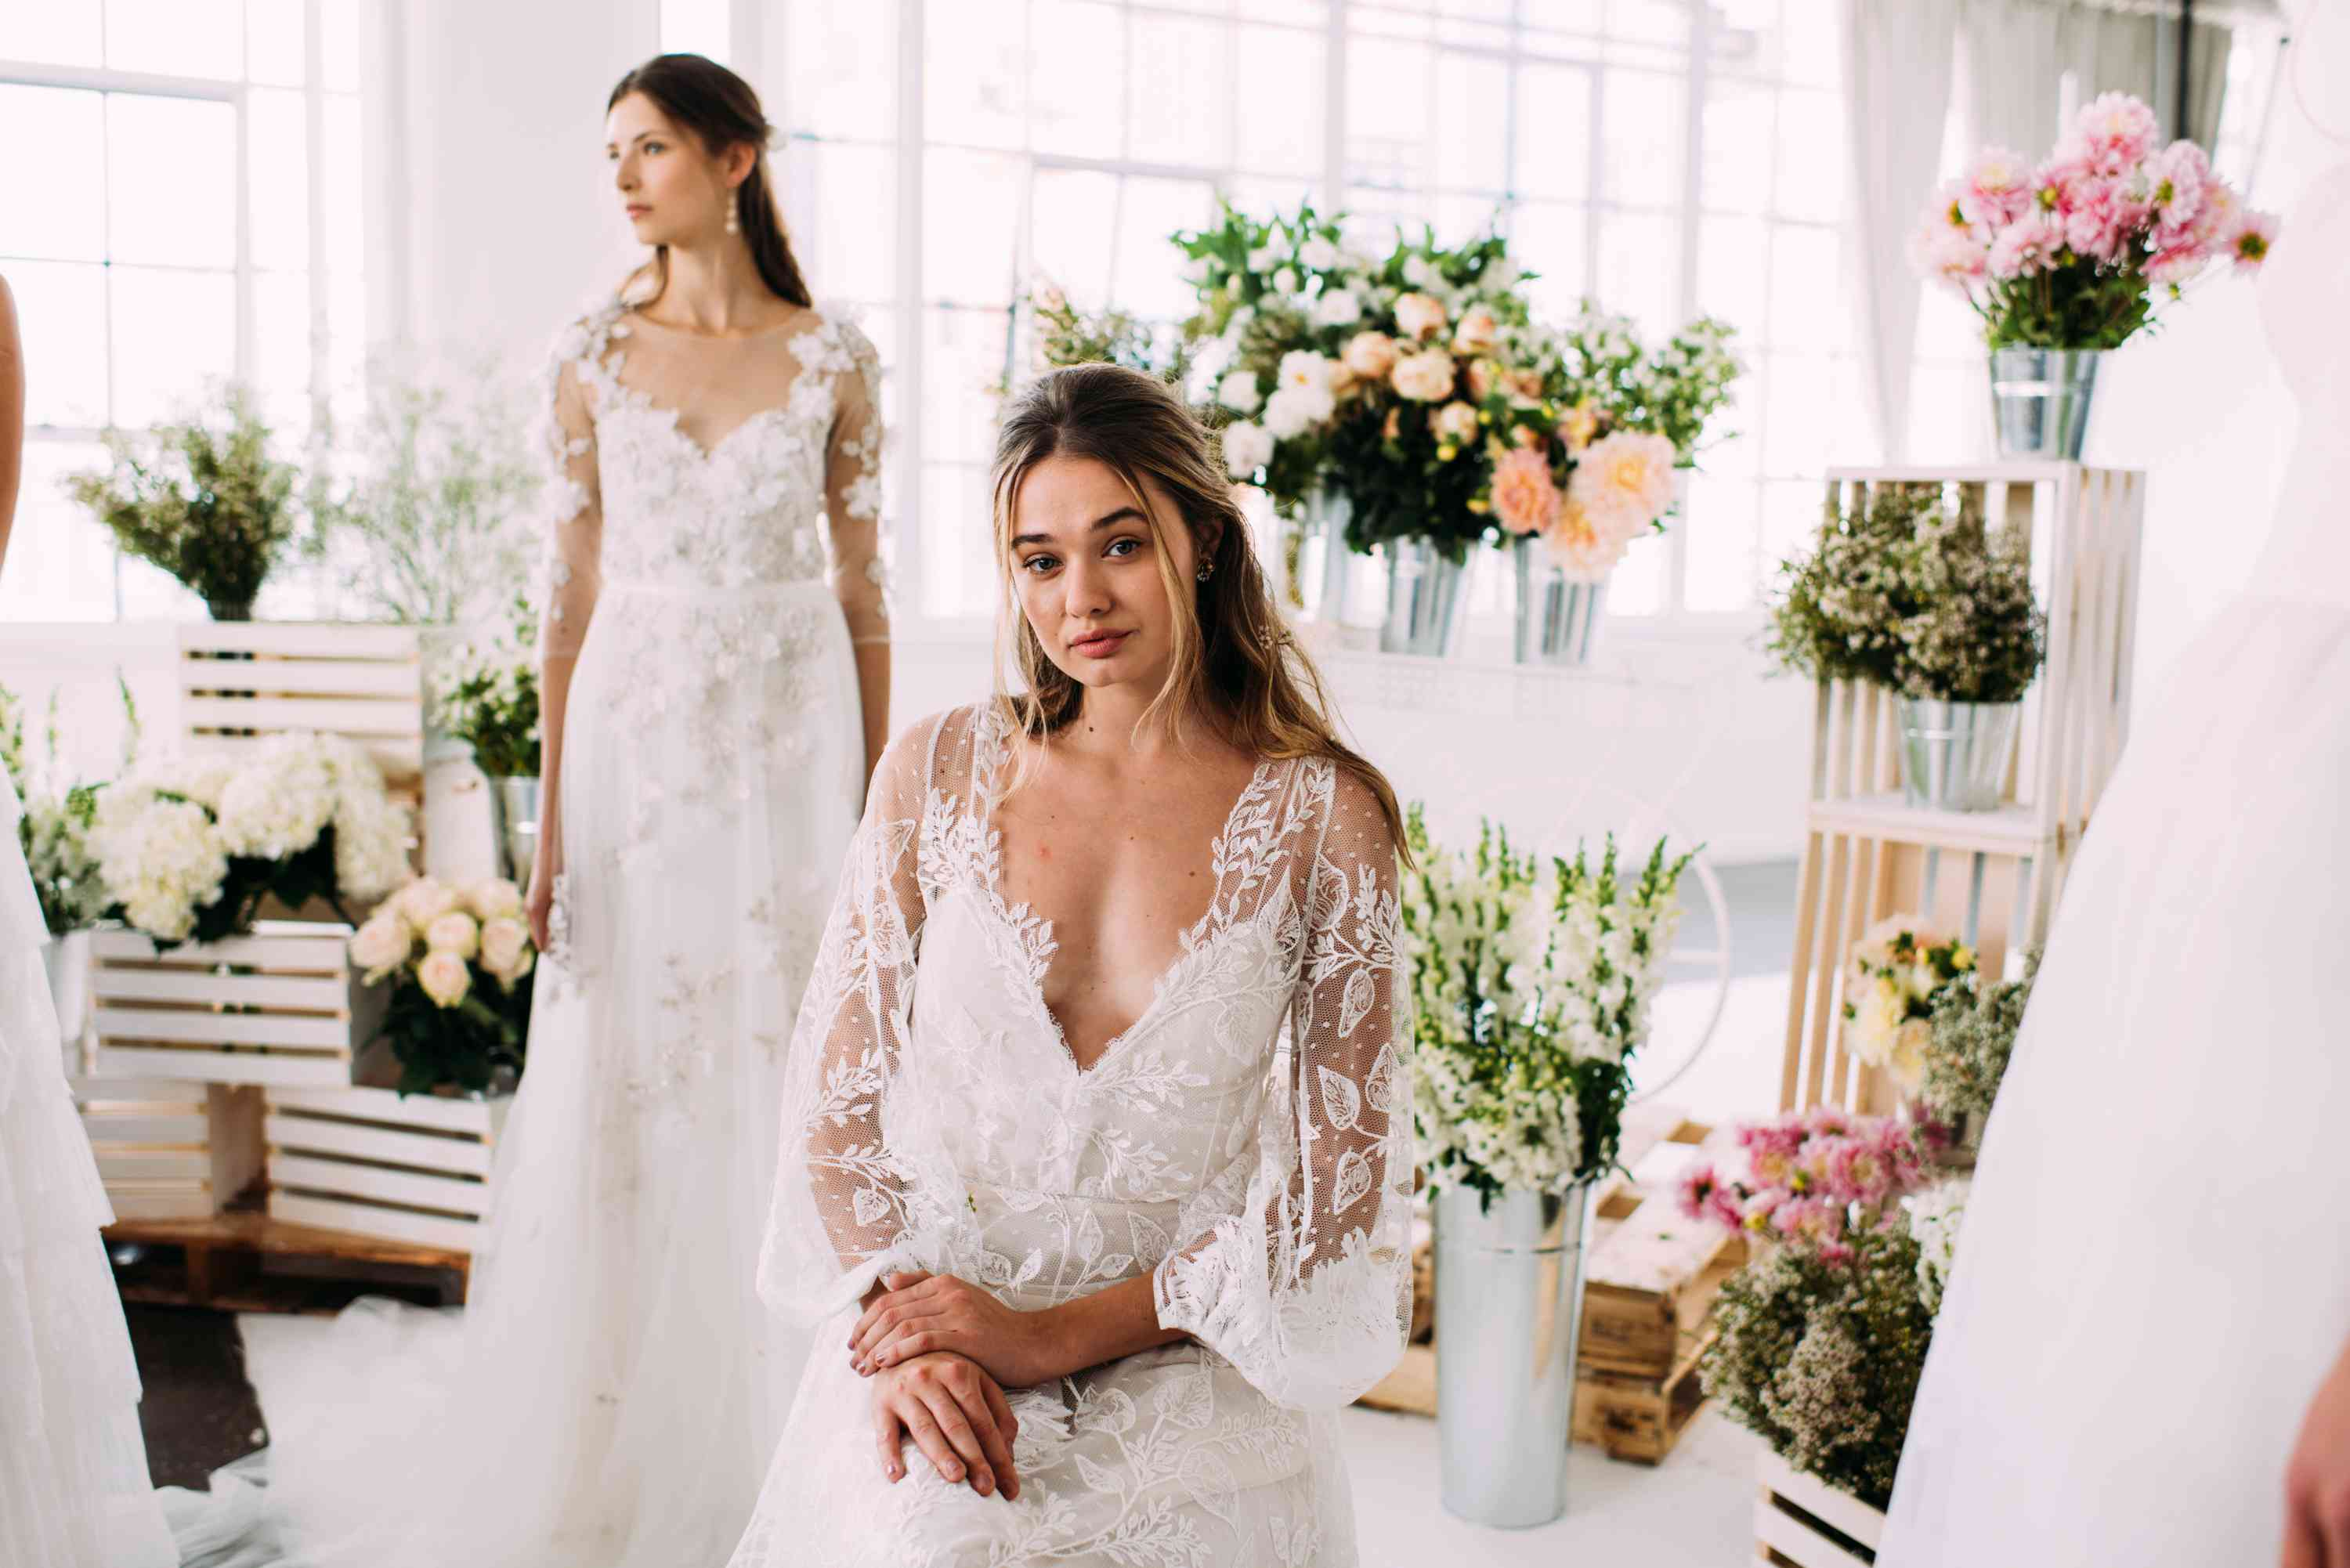 Image result for Buy your wedding outfit